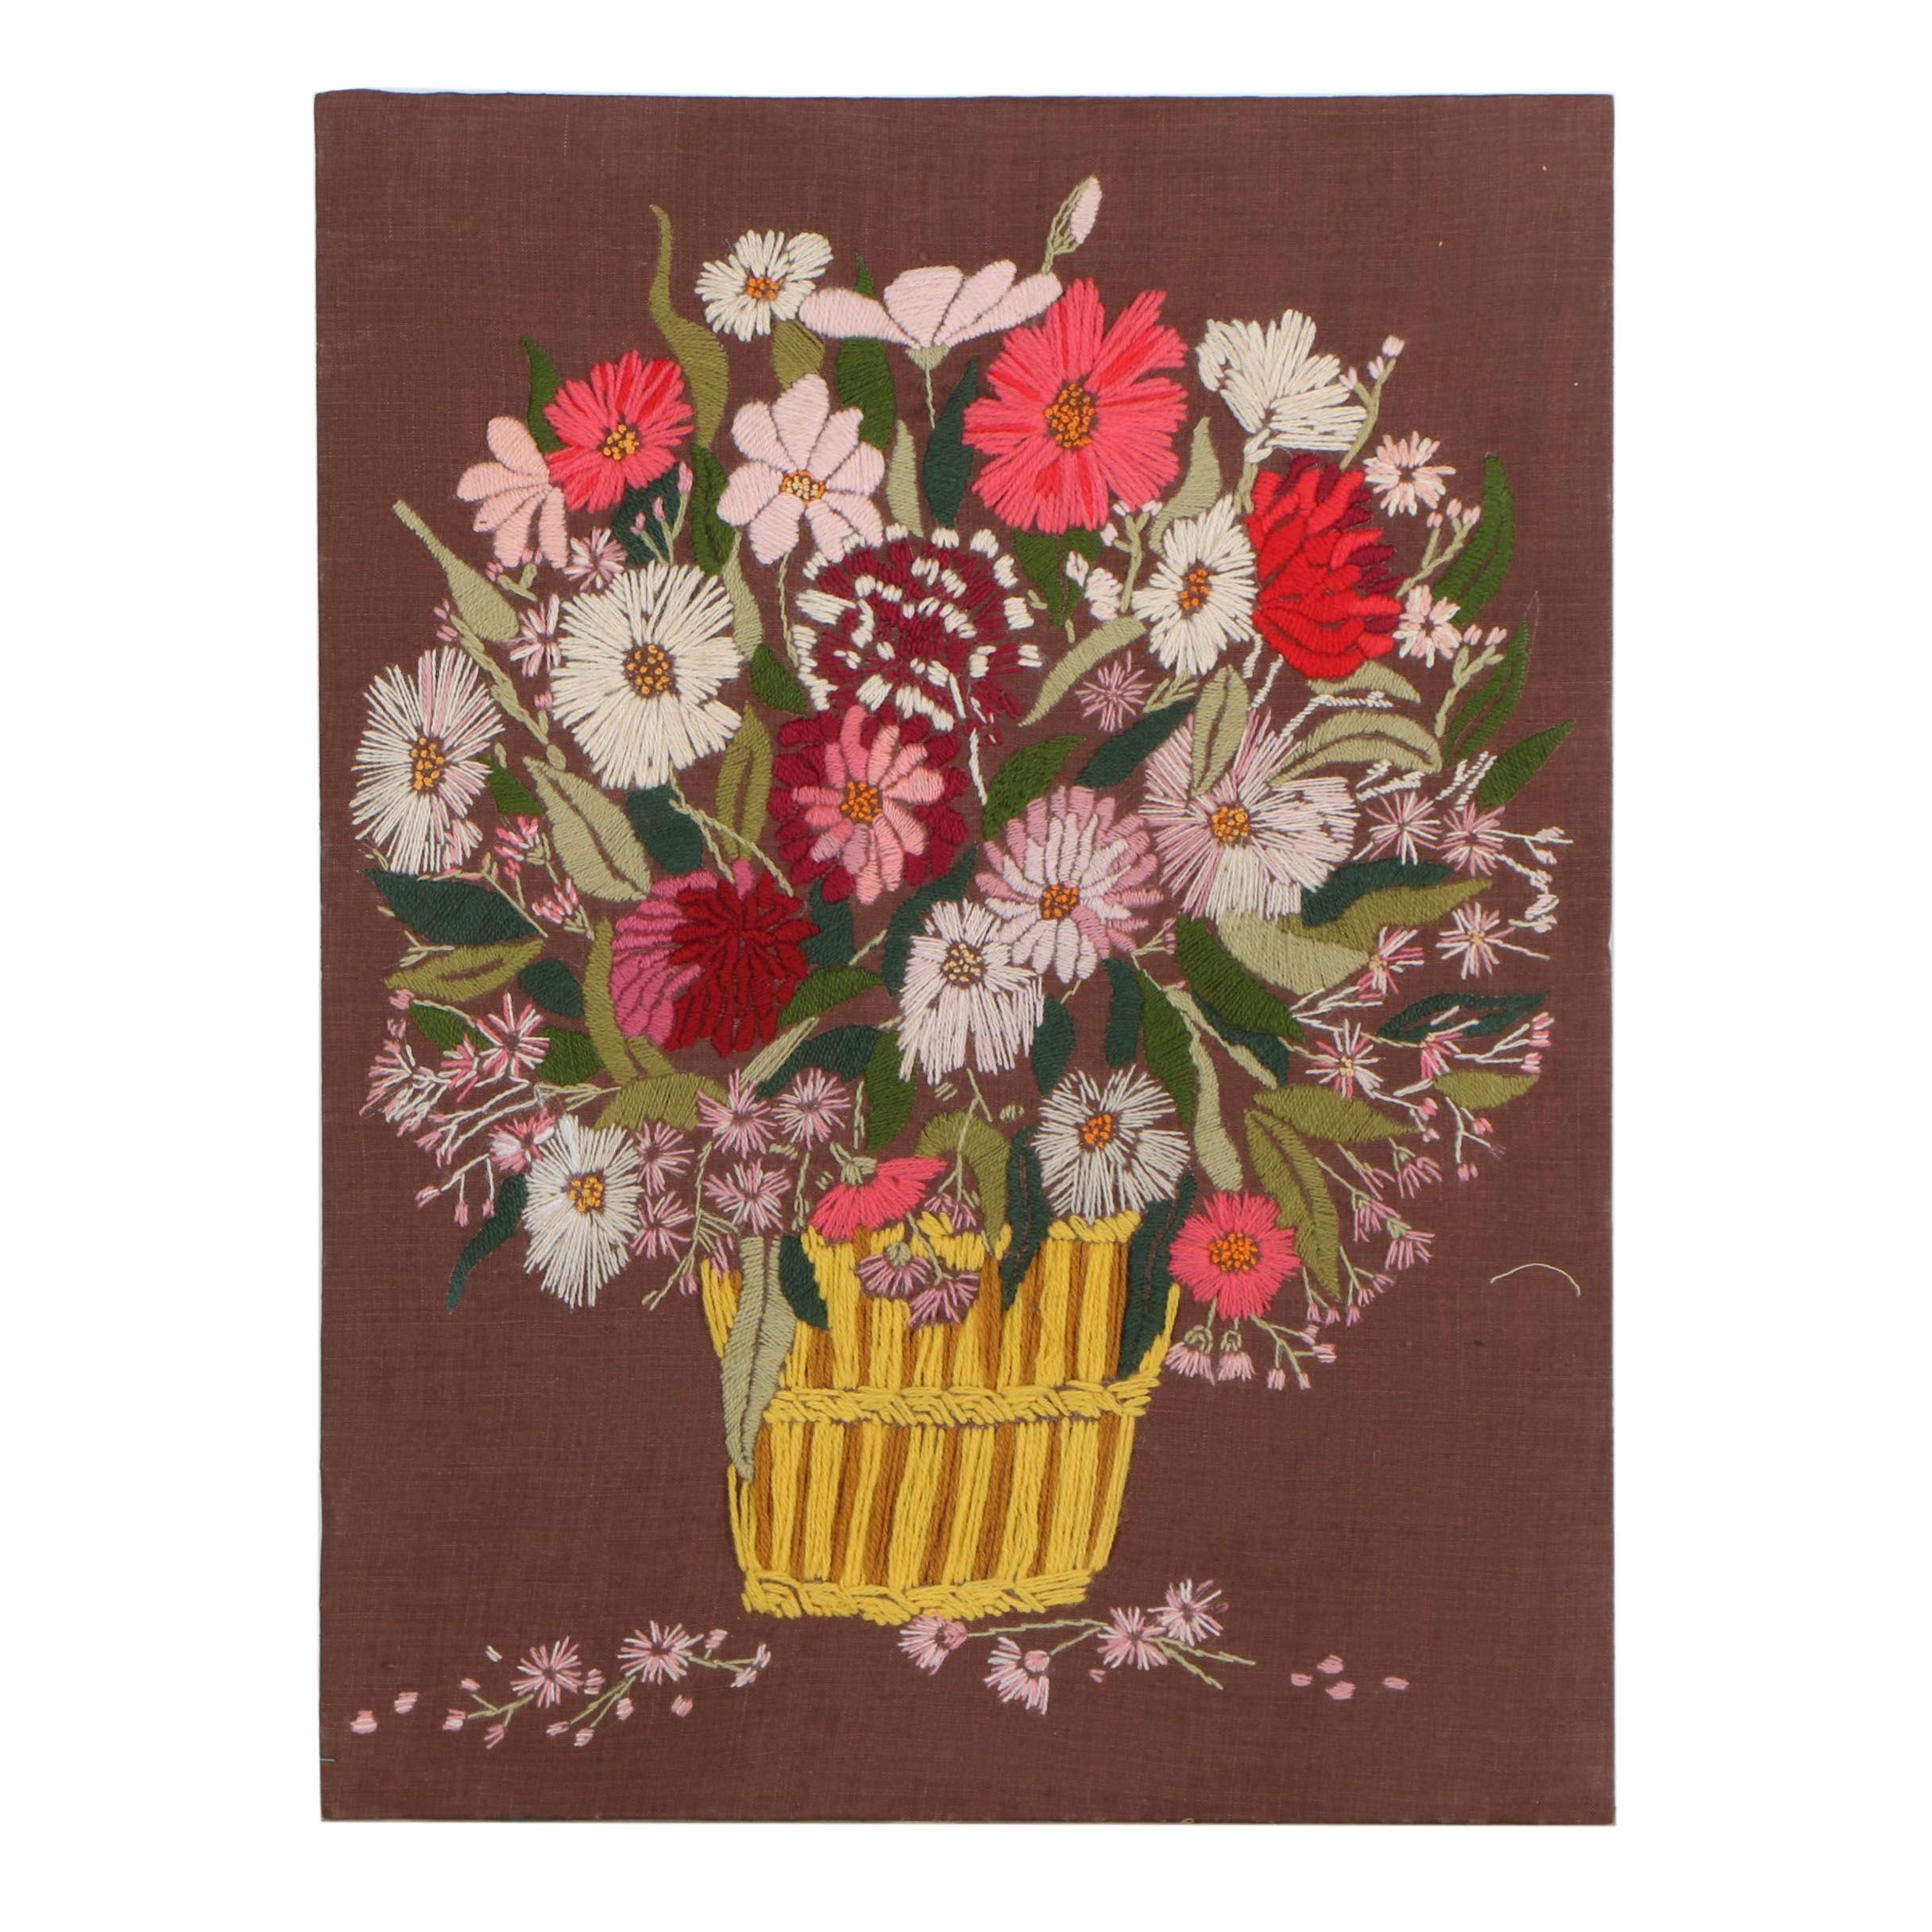 Late 20th Century Floral Embroidery Panel